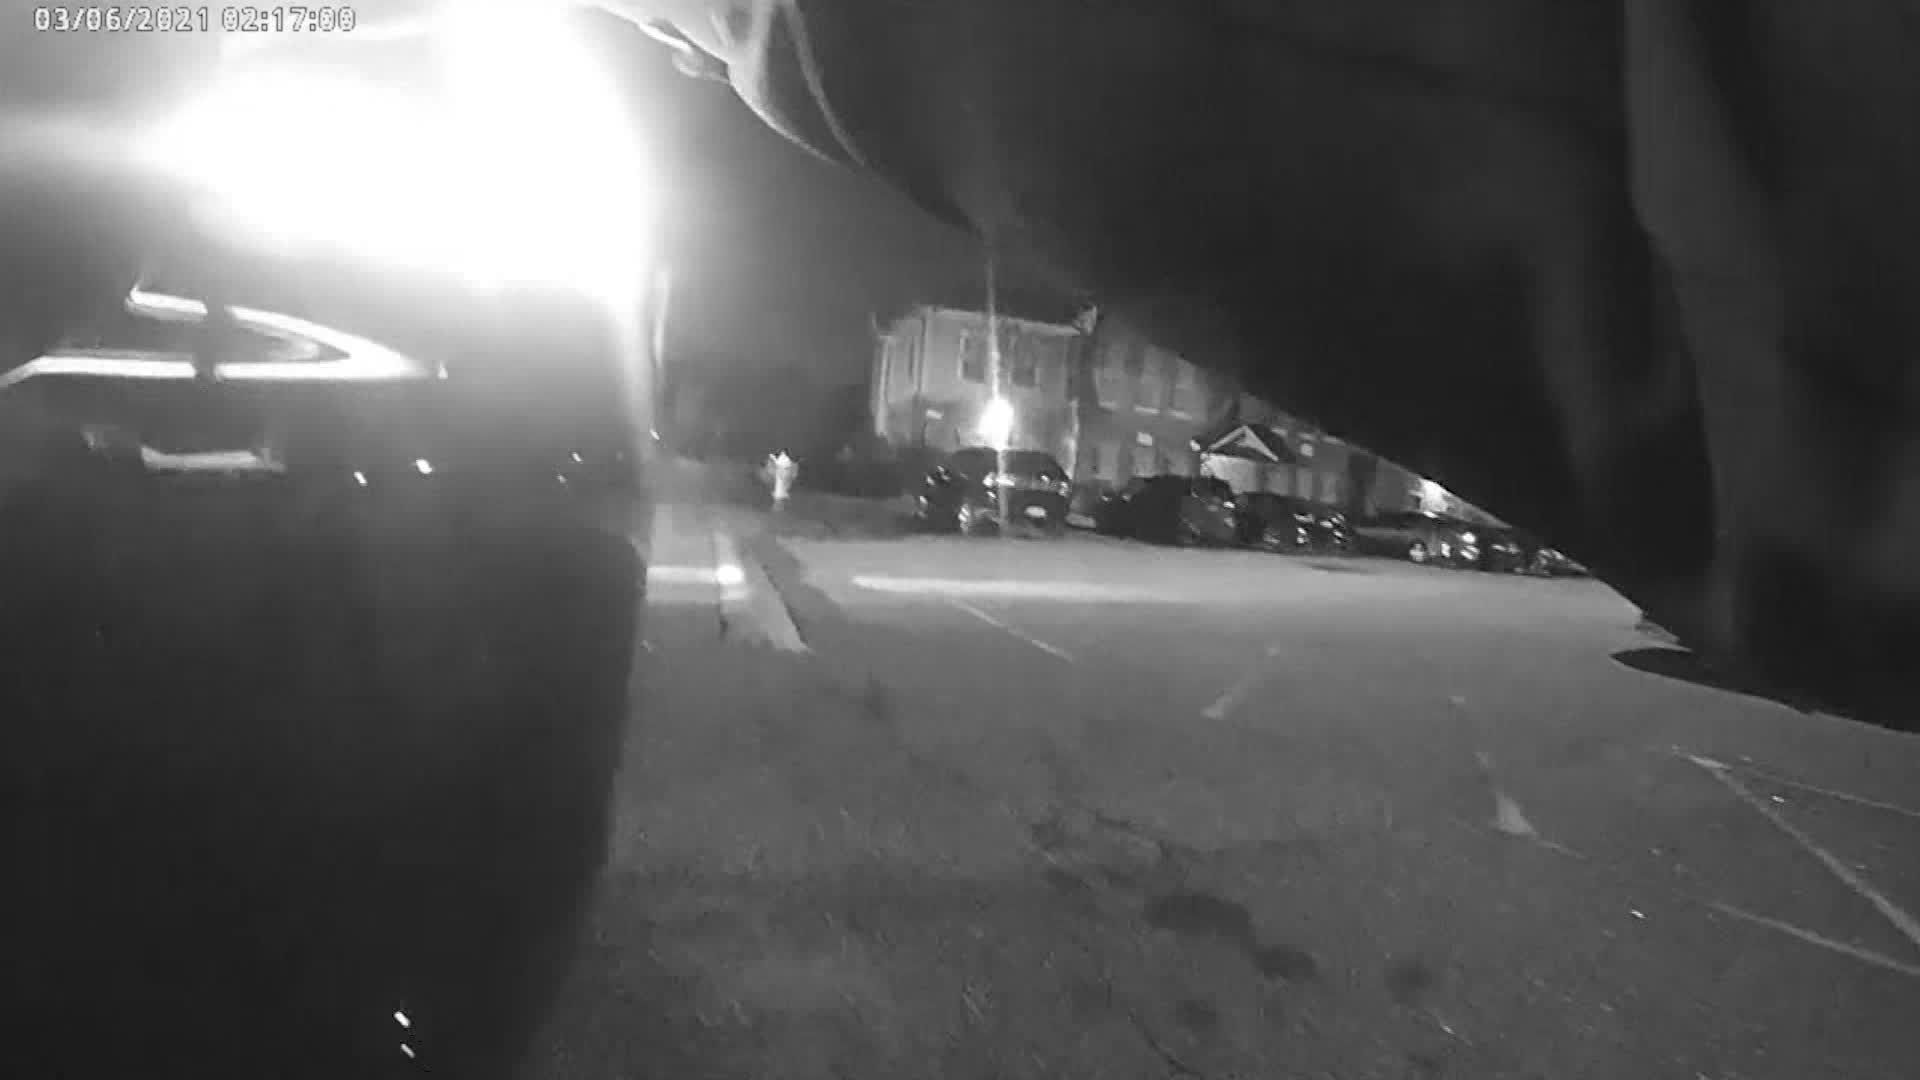 Bodycam video released of shooting involving Greenville County deputy